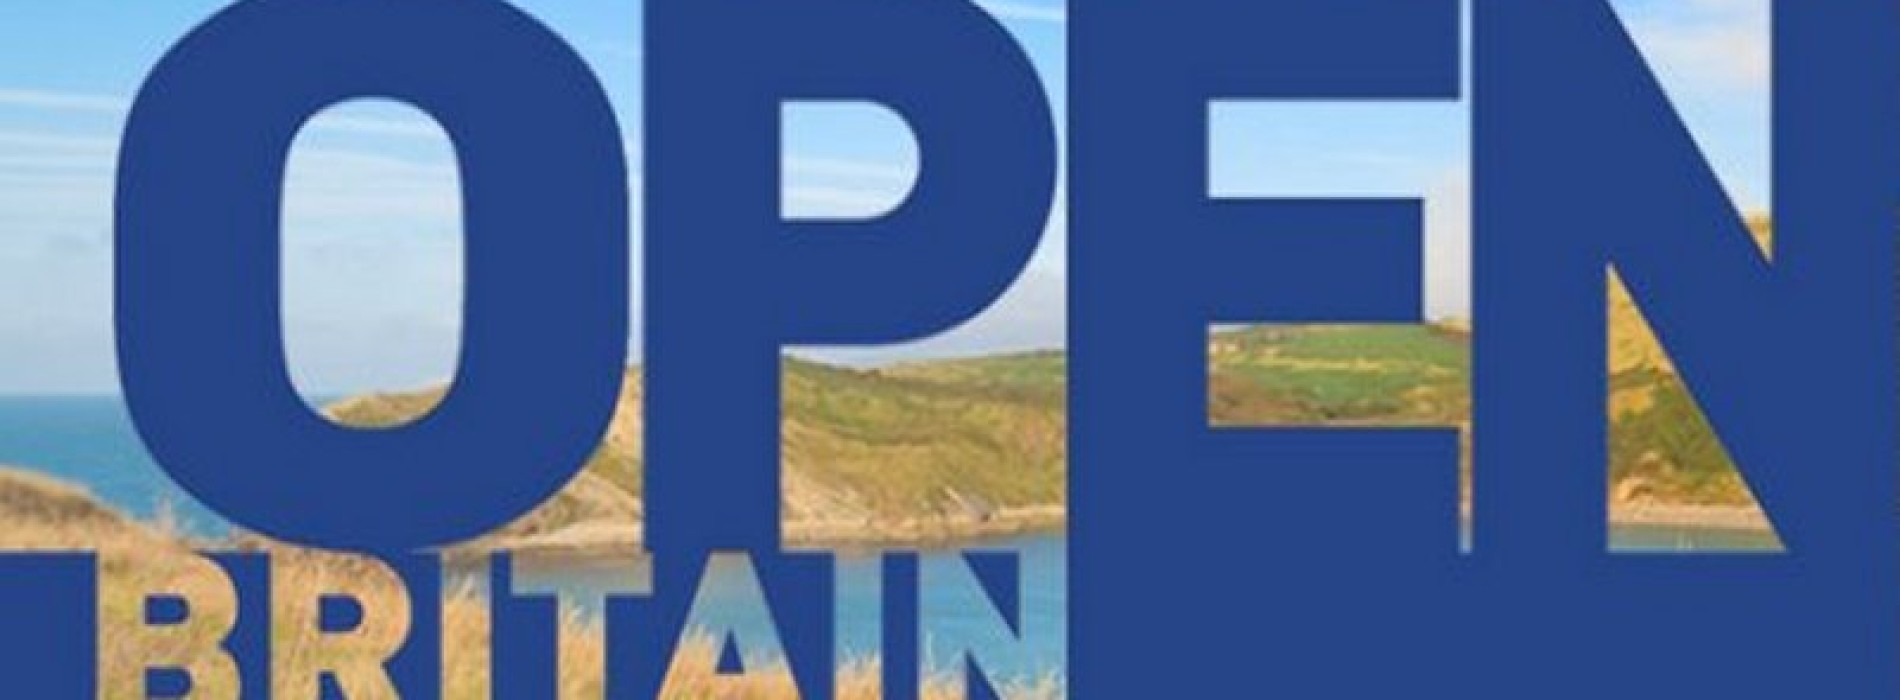 OpenBritain: a one-stop-shop for accessible travel information